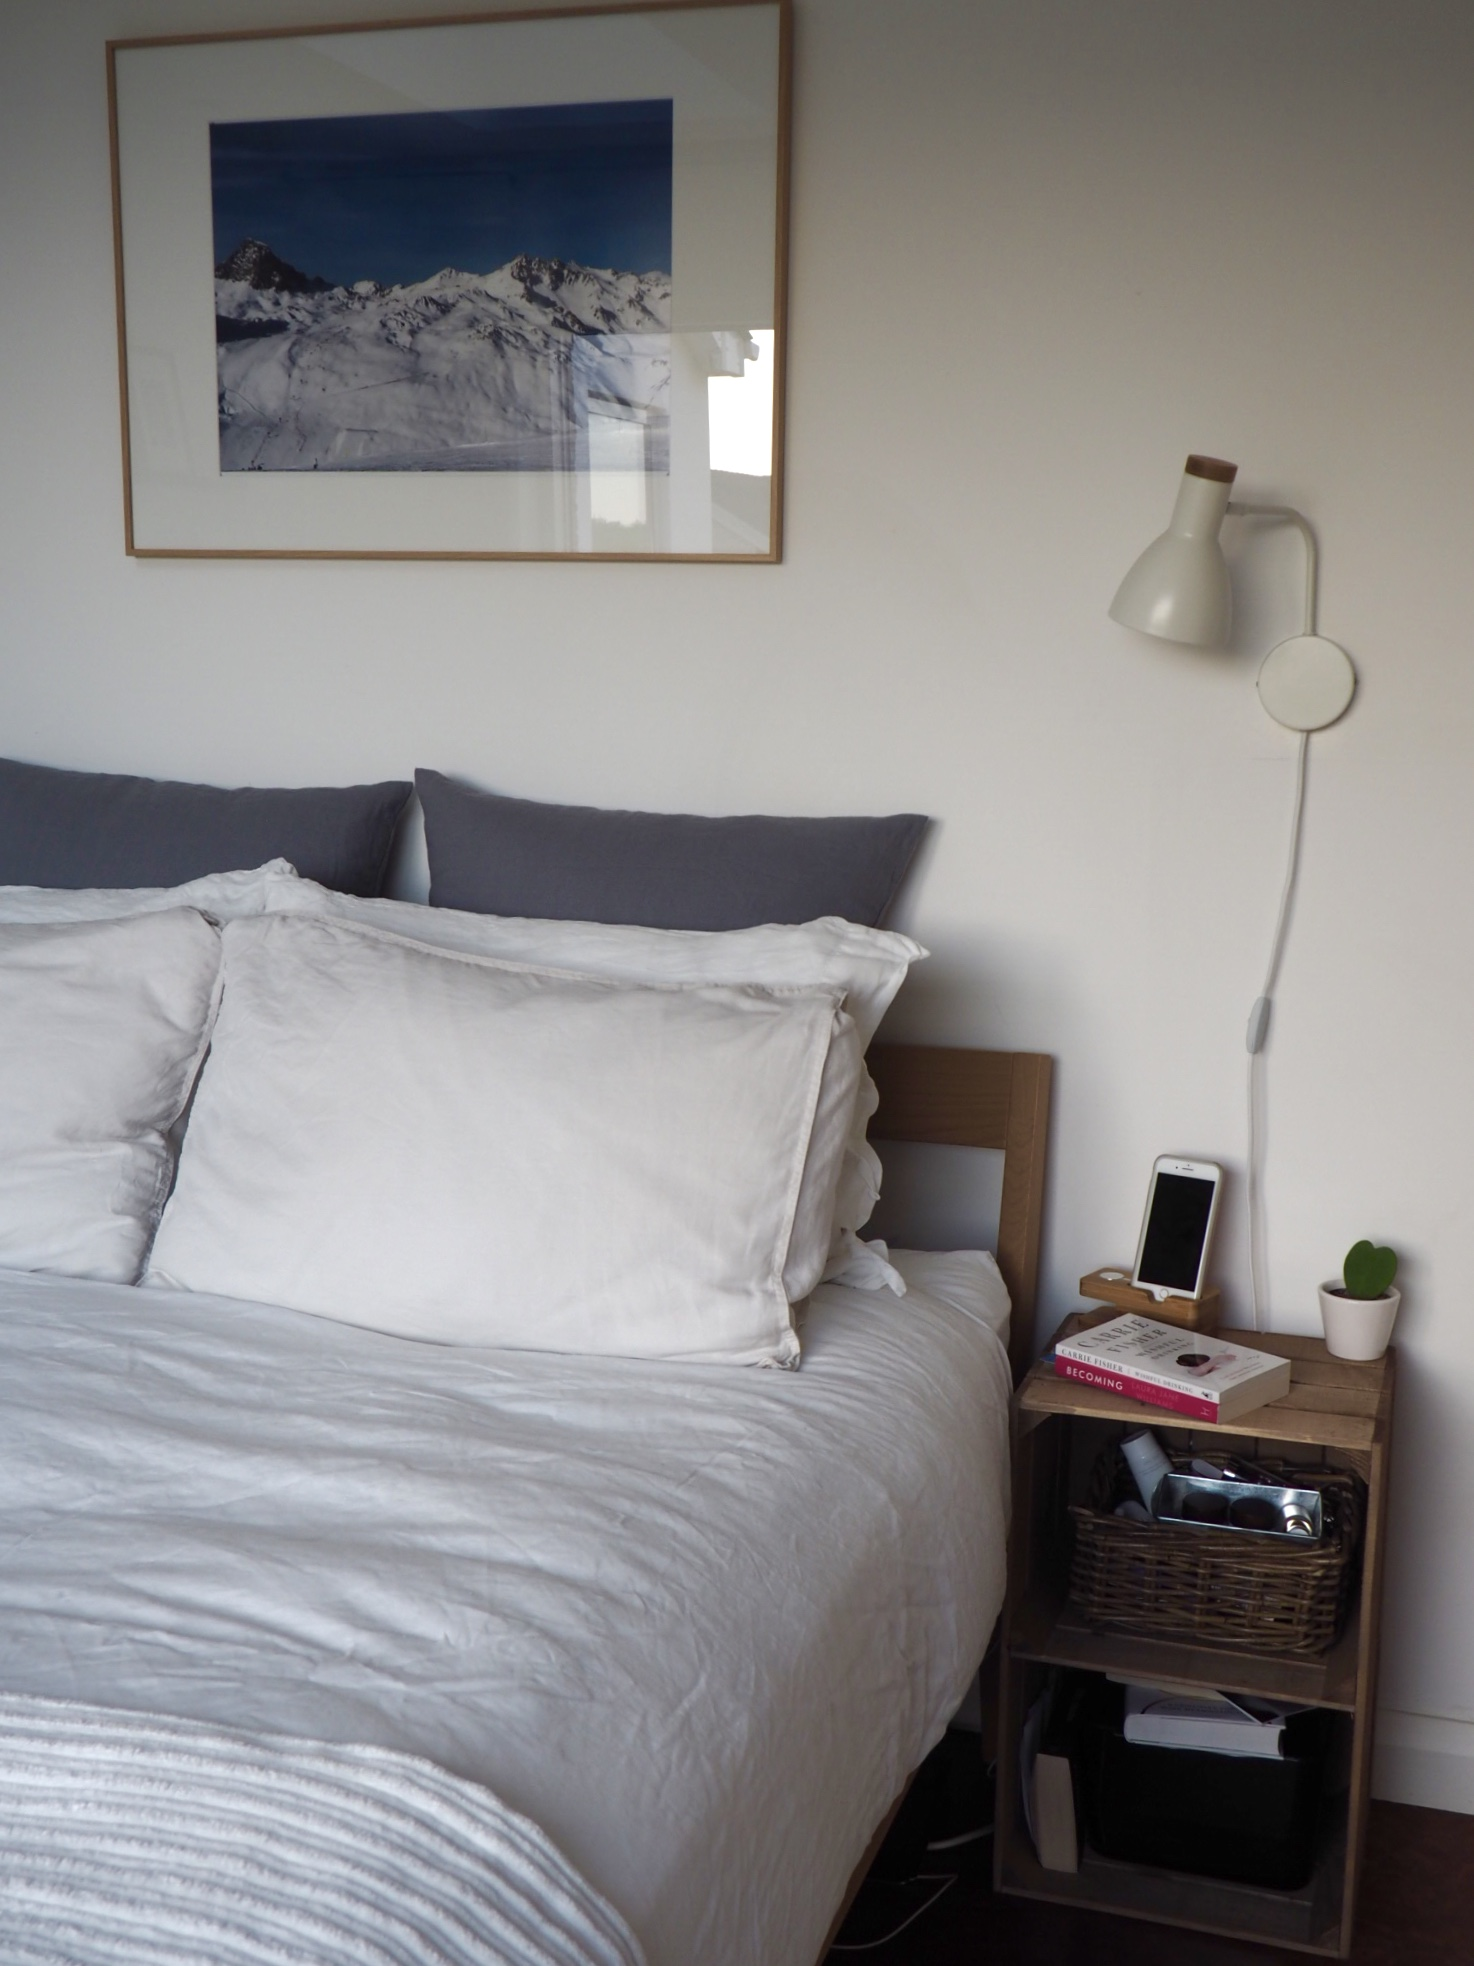 My House Tour - bedroom